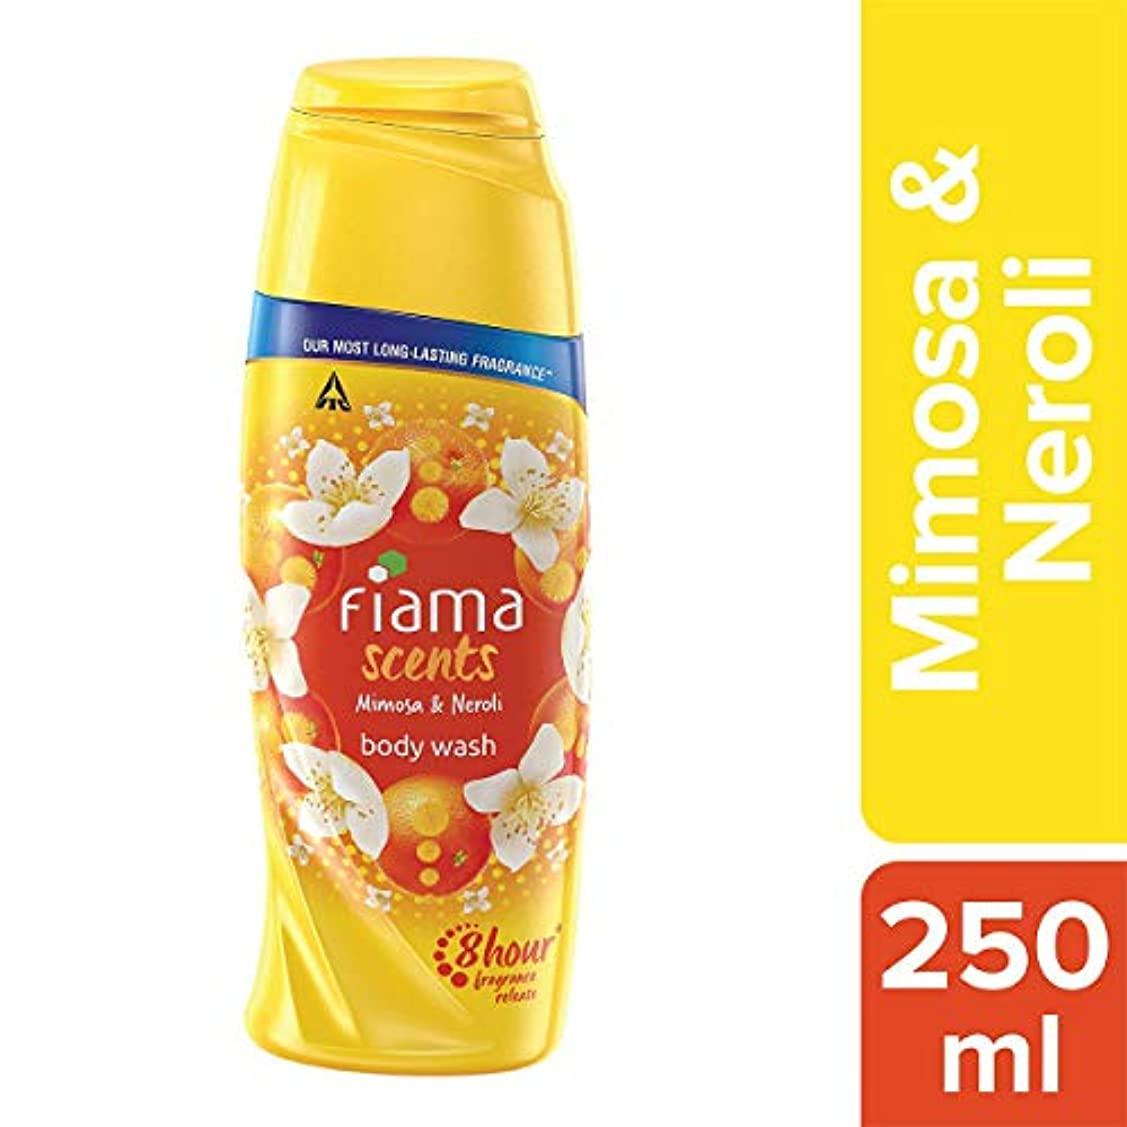 主張する連合してはいけないFiama Scents Mimosa and Neroli Body Wash, 250 ml